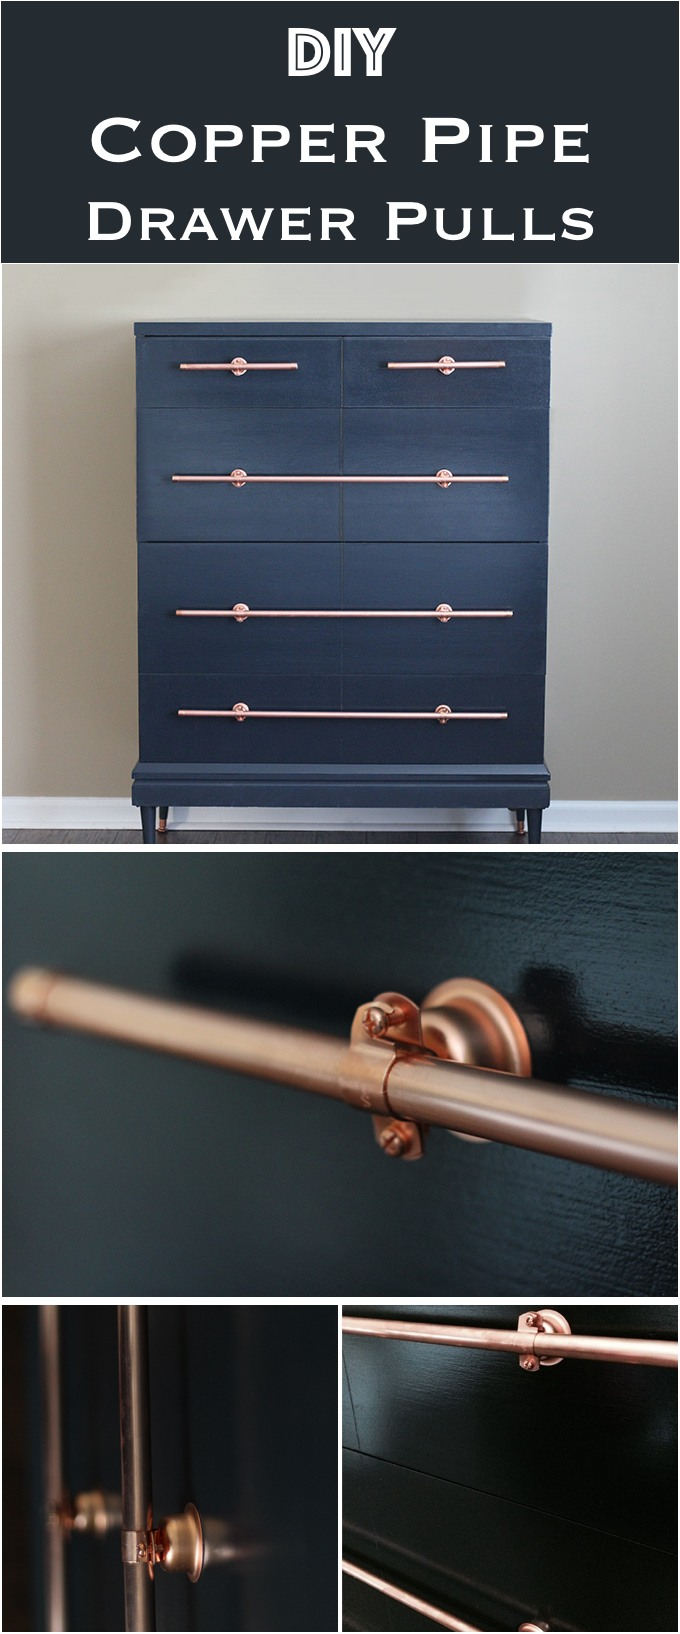 DIY Copper Pipe Drawer Pulls